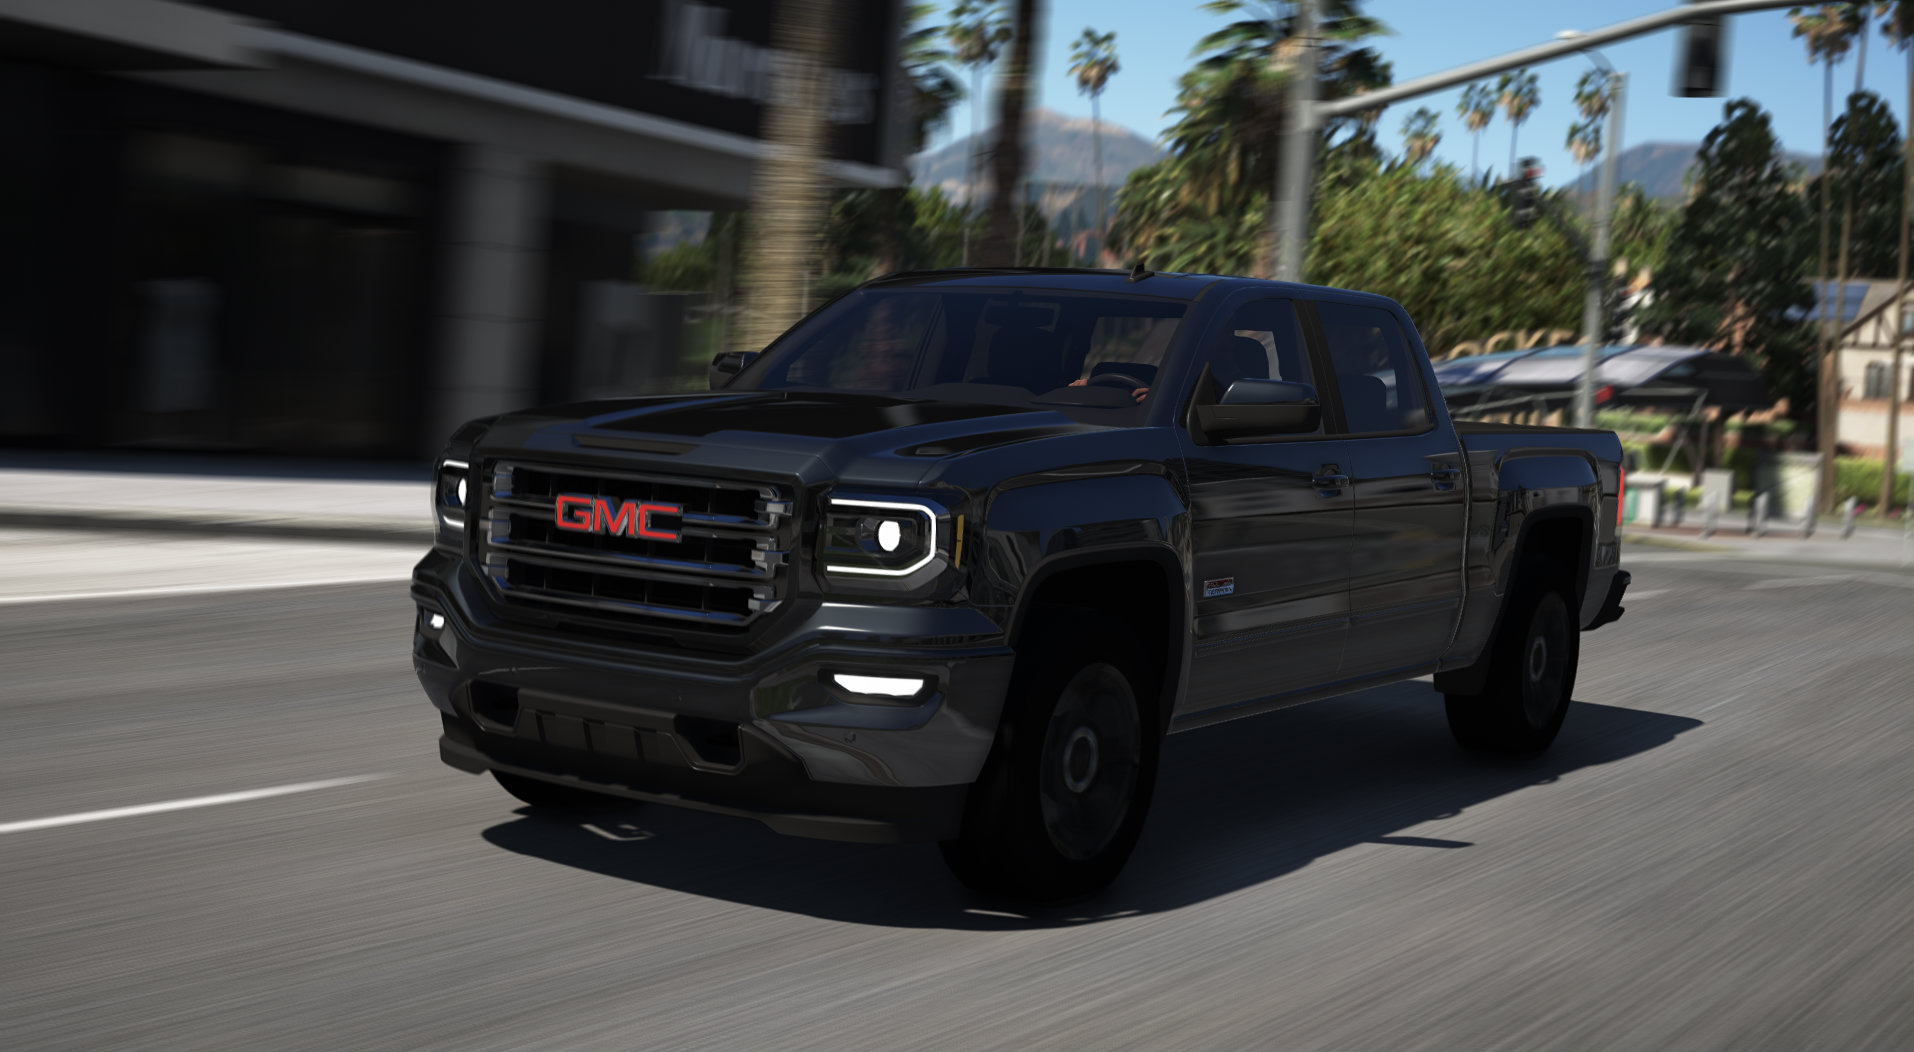 Gmc Sierra 1500 Crew Cab All Terrain X 2017 Add On 83206f Eve 20180612225519